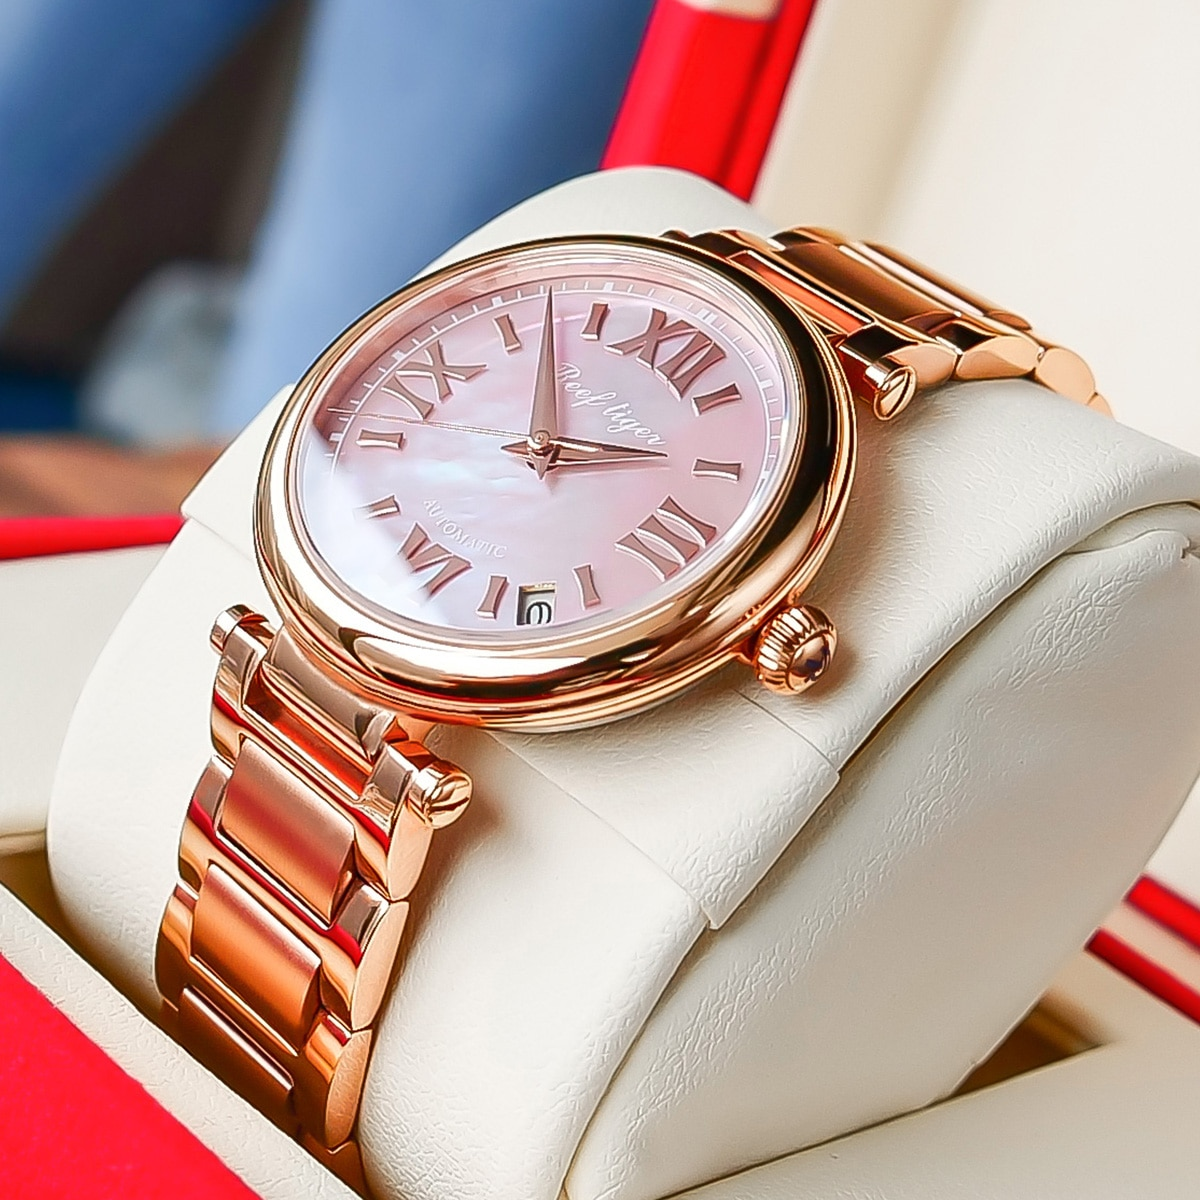 Reef Tiger/RT 2020 Top Brand Rose Gold Luxury Ladies Watch Sapphire Automatic Watch for Women Steel Bracelet Watches RGA1595 enlarge